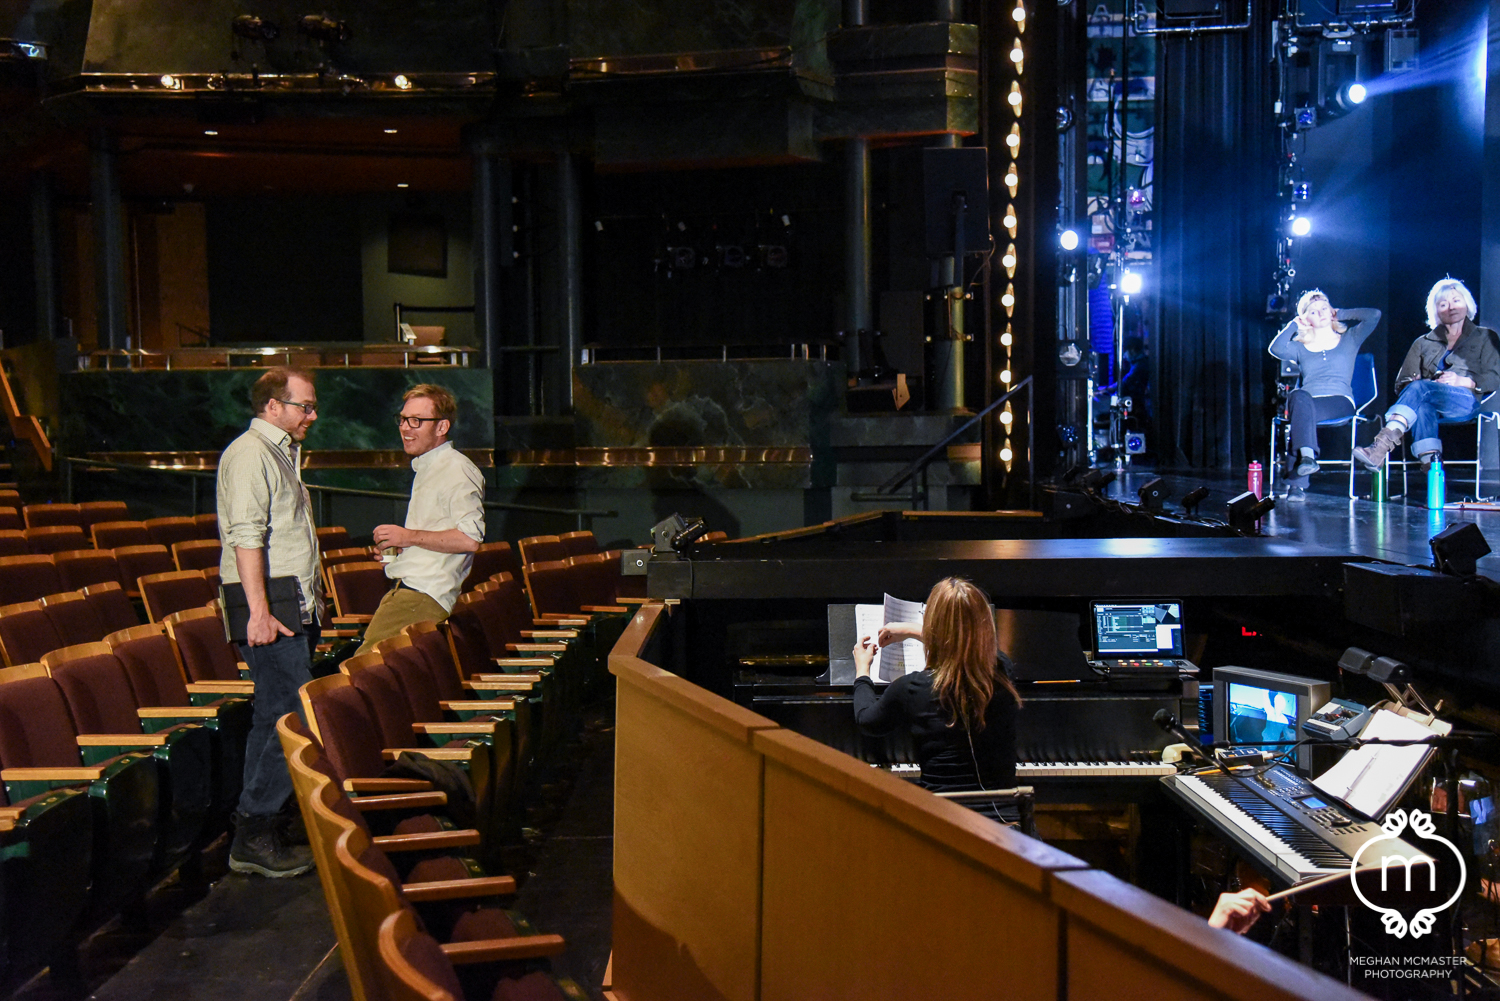 Nicholas Lloyd Webber and James D. Reid listening in on a world premiere of The Little Prince - The Musical rehearsal at Theatre Calgary.